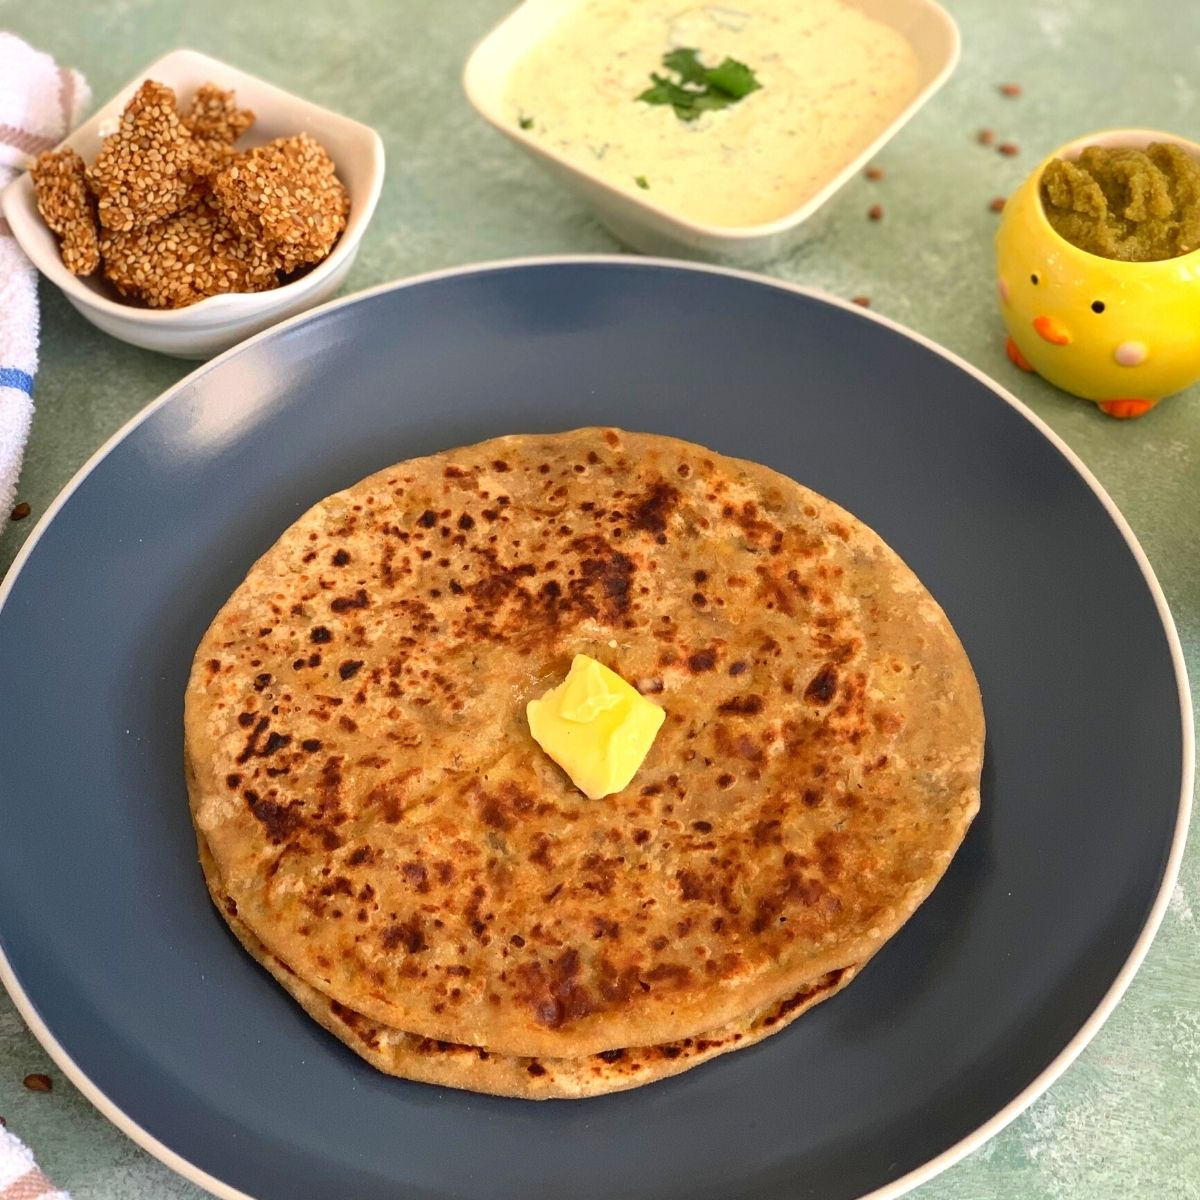 Horse Gram paratha served on a blue plate along with cucumber raita, til chikki, amla dhaniya chutney and slices of cucumber